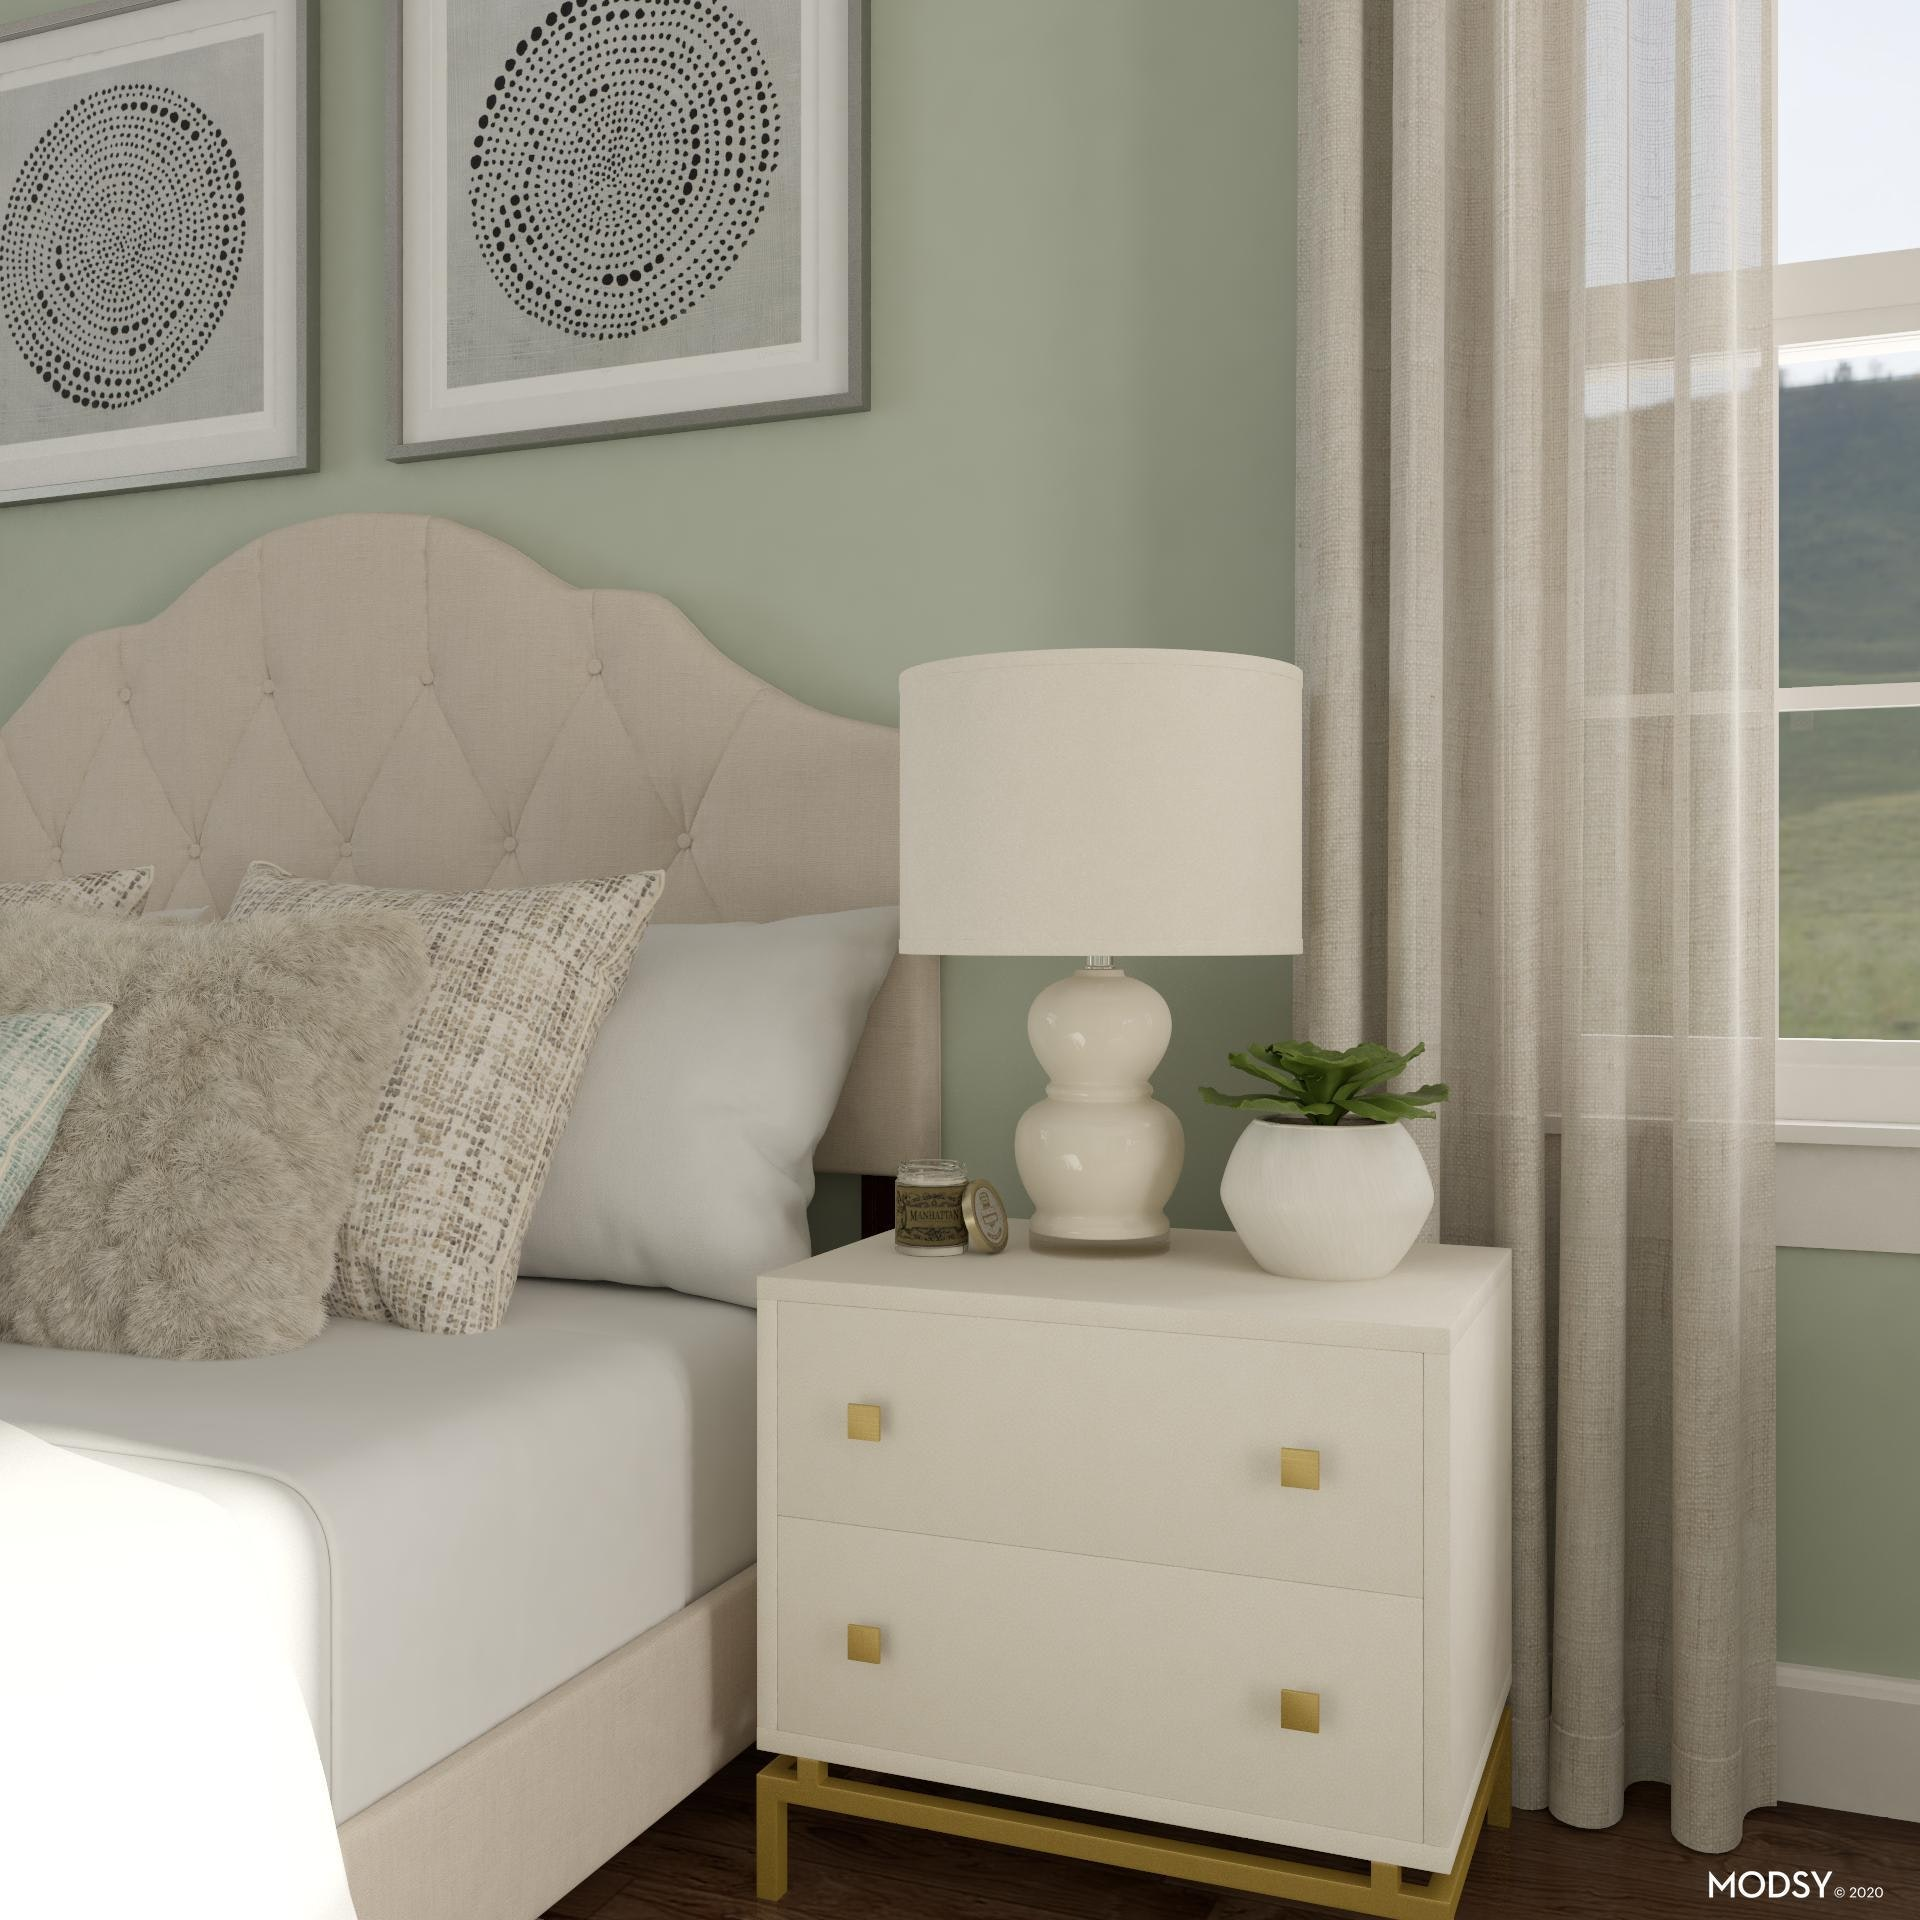 Simple Nightstand Surface Styling Transitional Style Bedroom Design Ideas